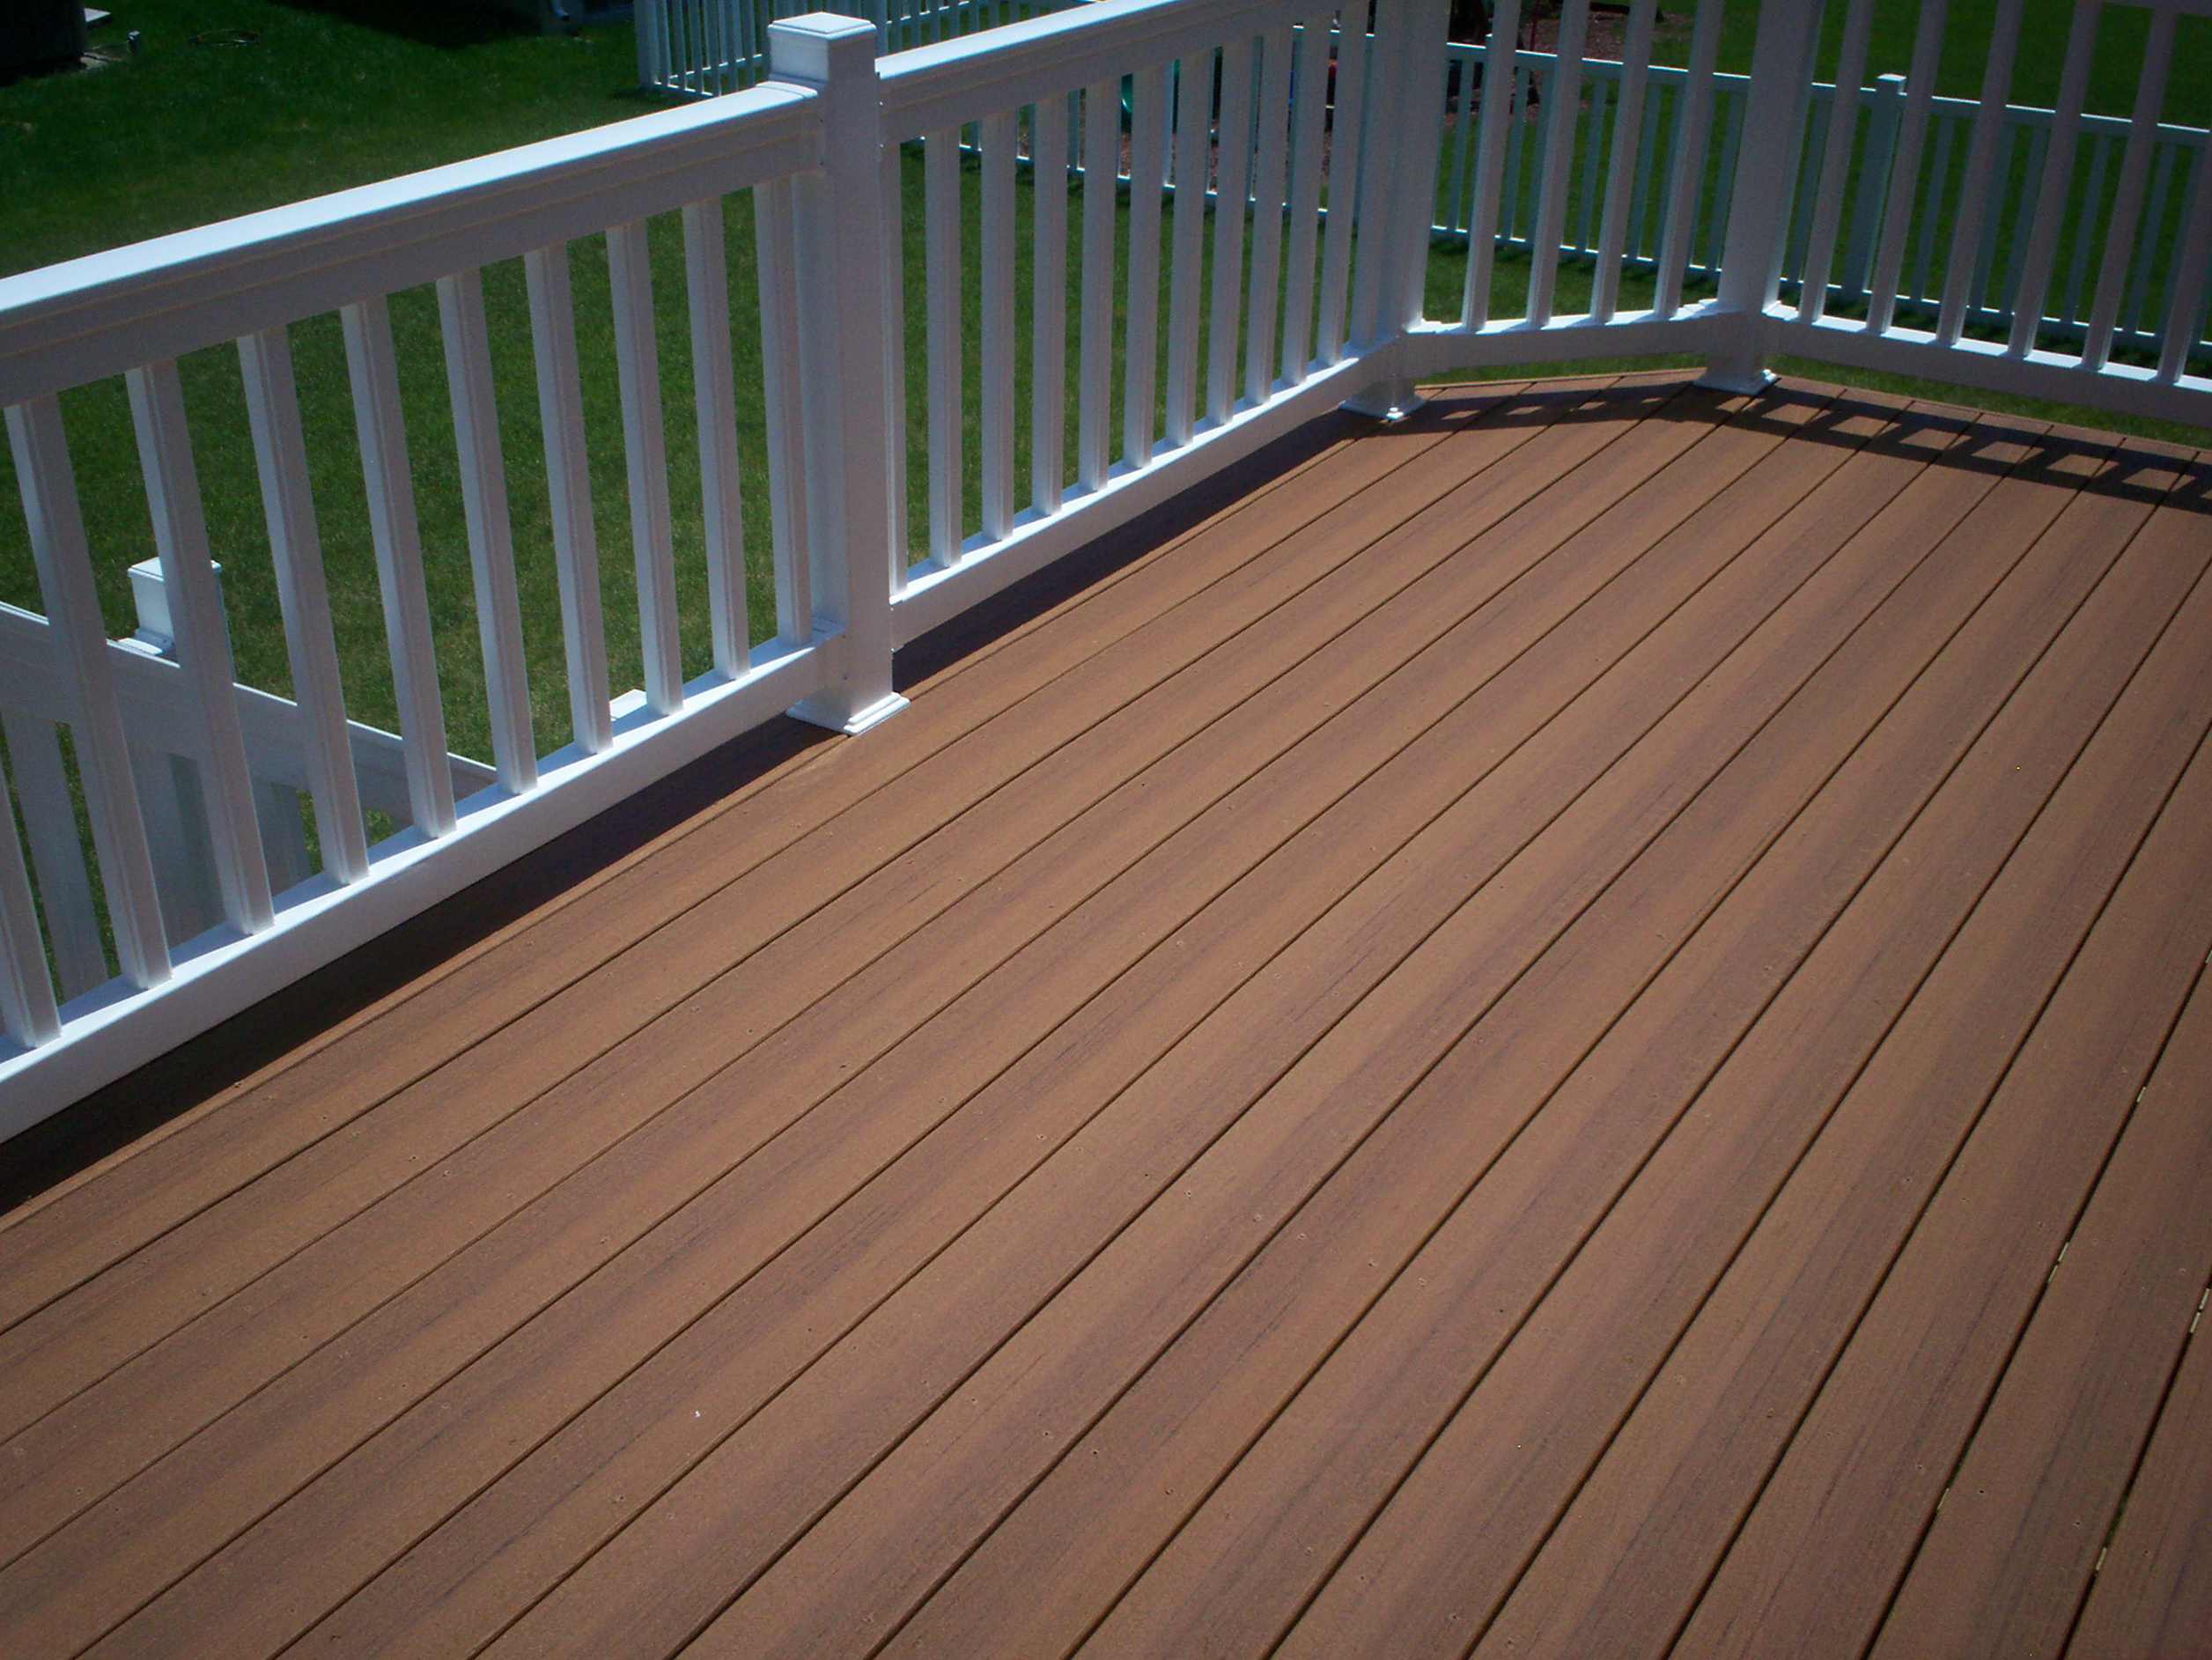 Discount composite decking nh home design ideas for Best composite decking material reviews